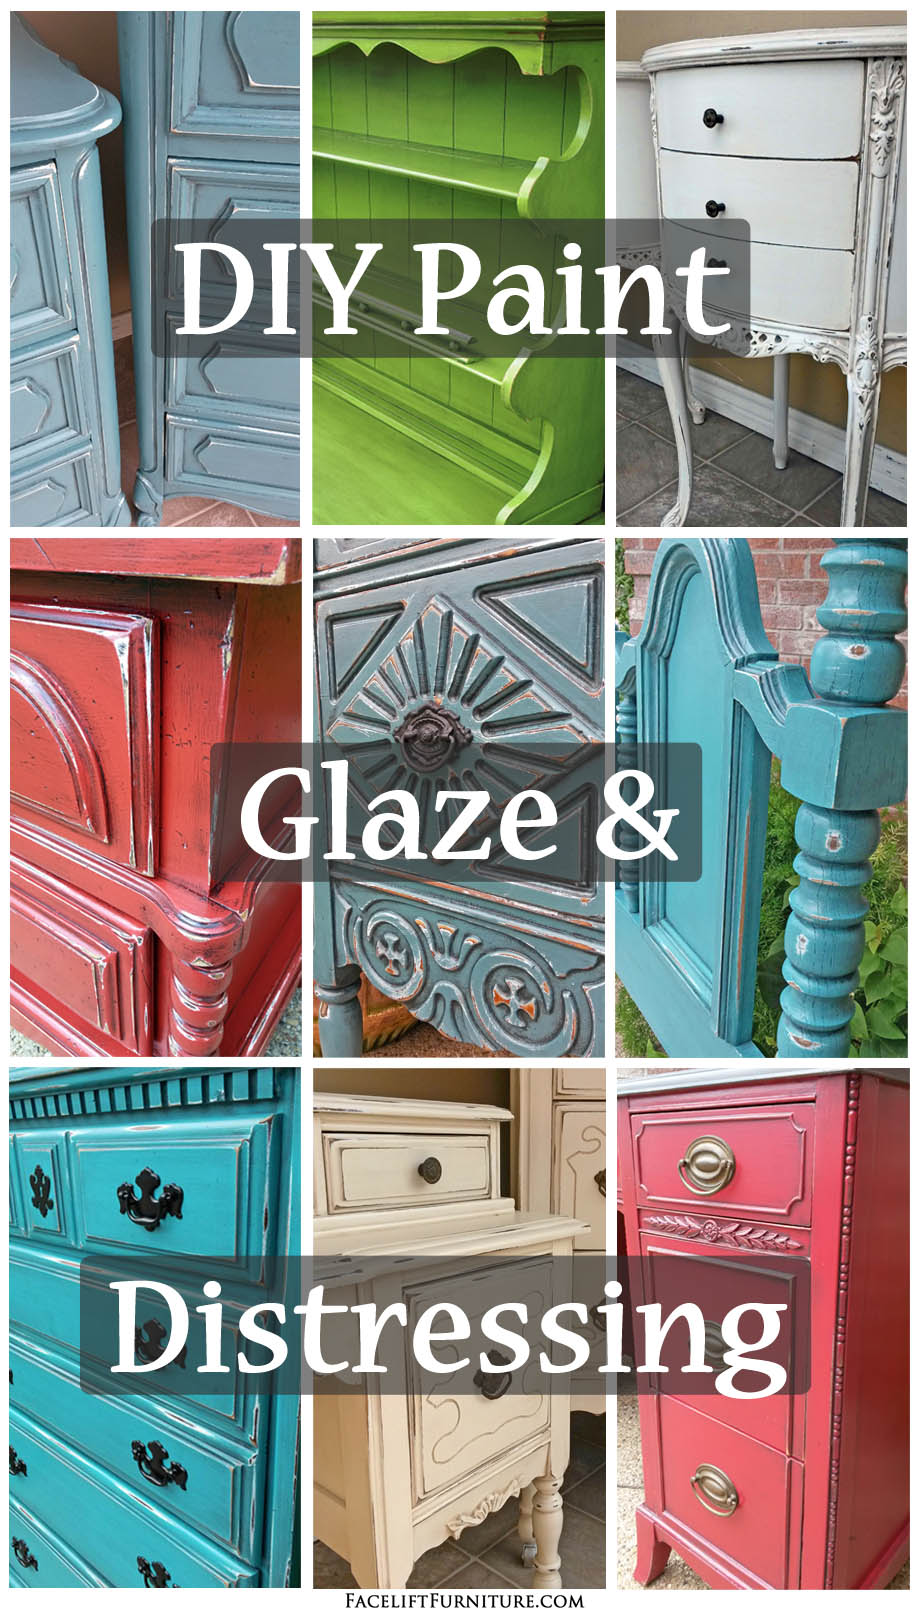 DIY Paint, Glaze & Distressing - Facelift Furniture